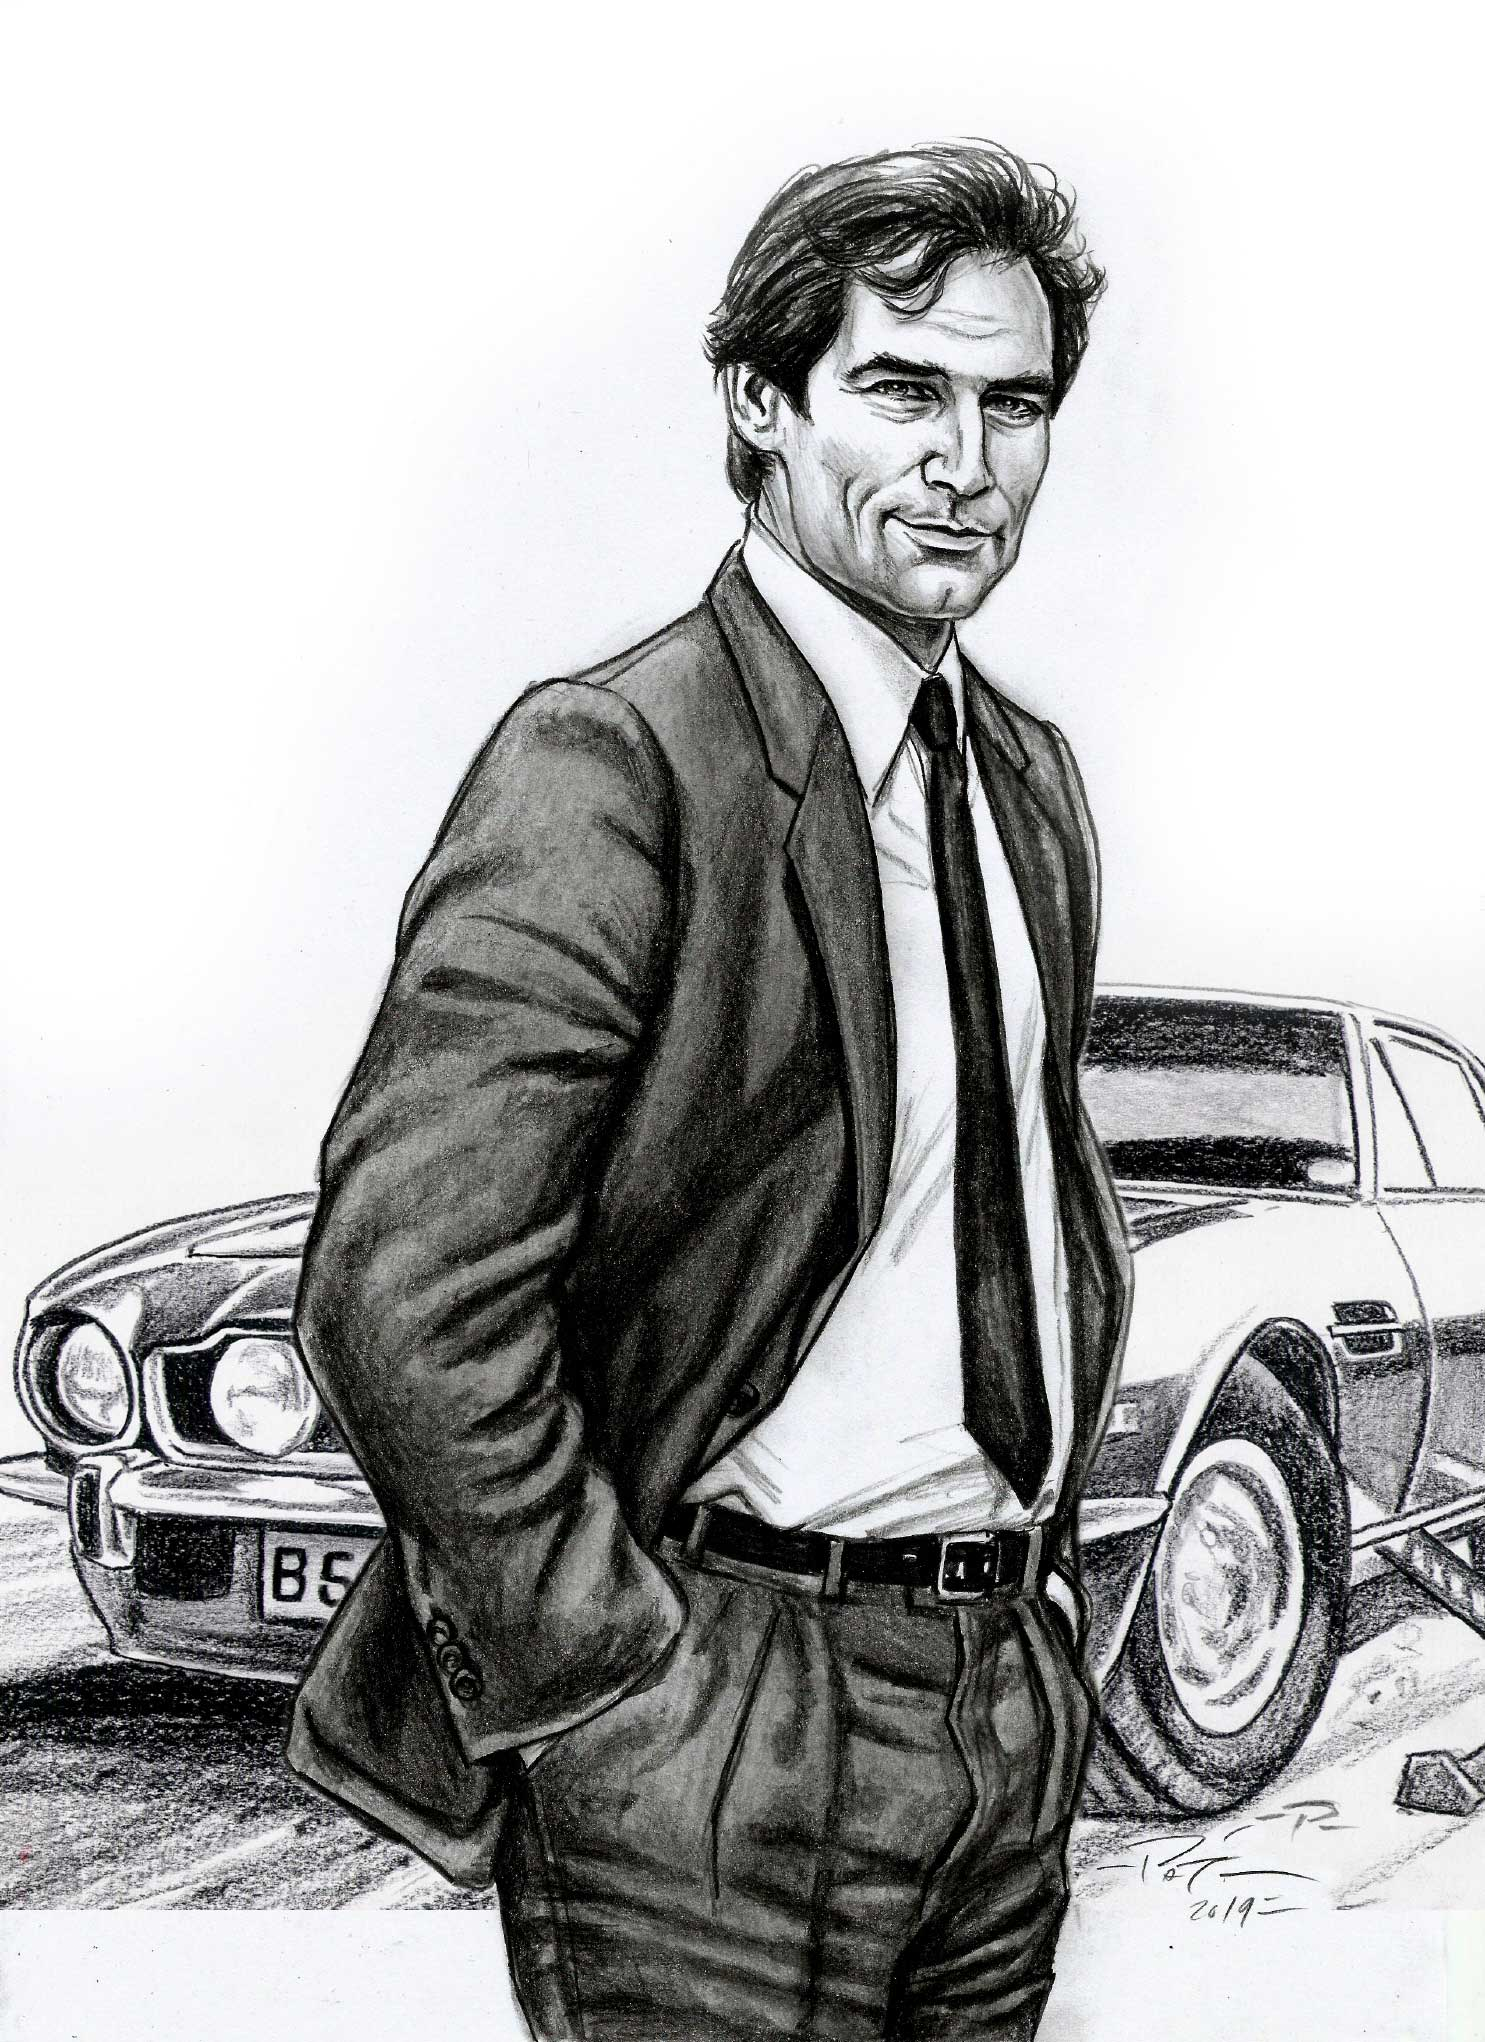 timothy dalton James Bond illustrations